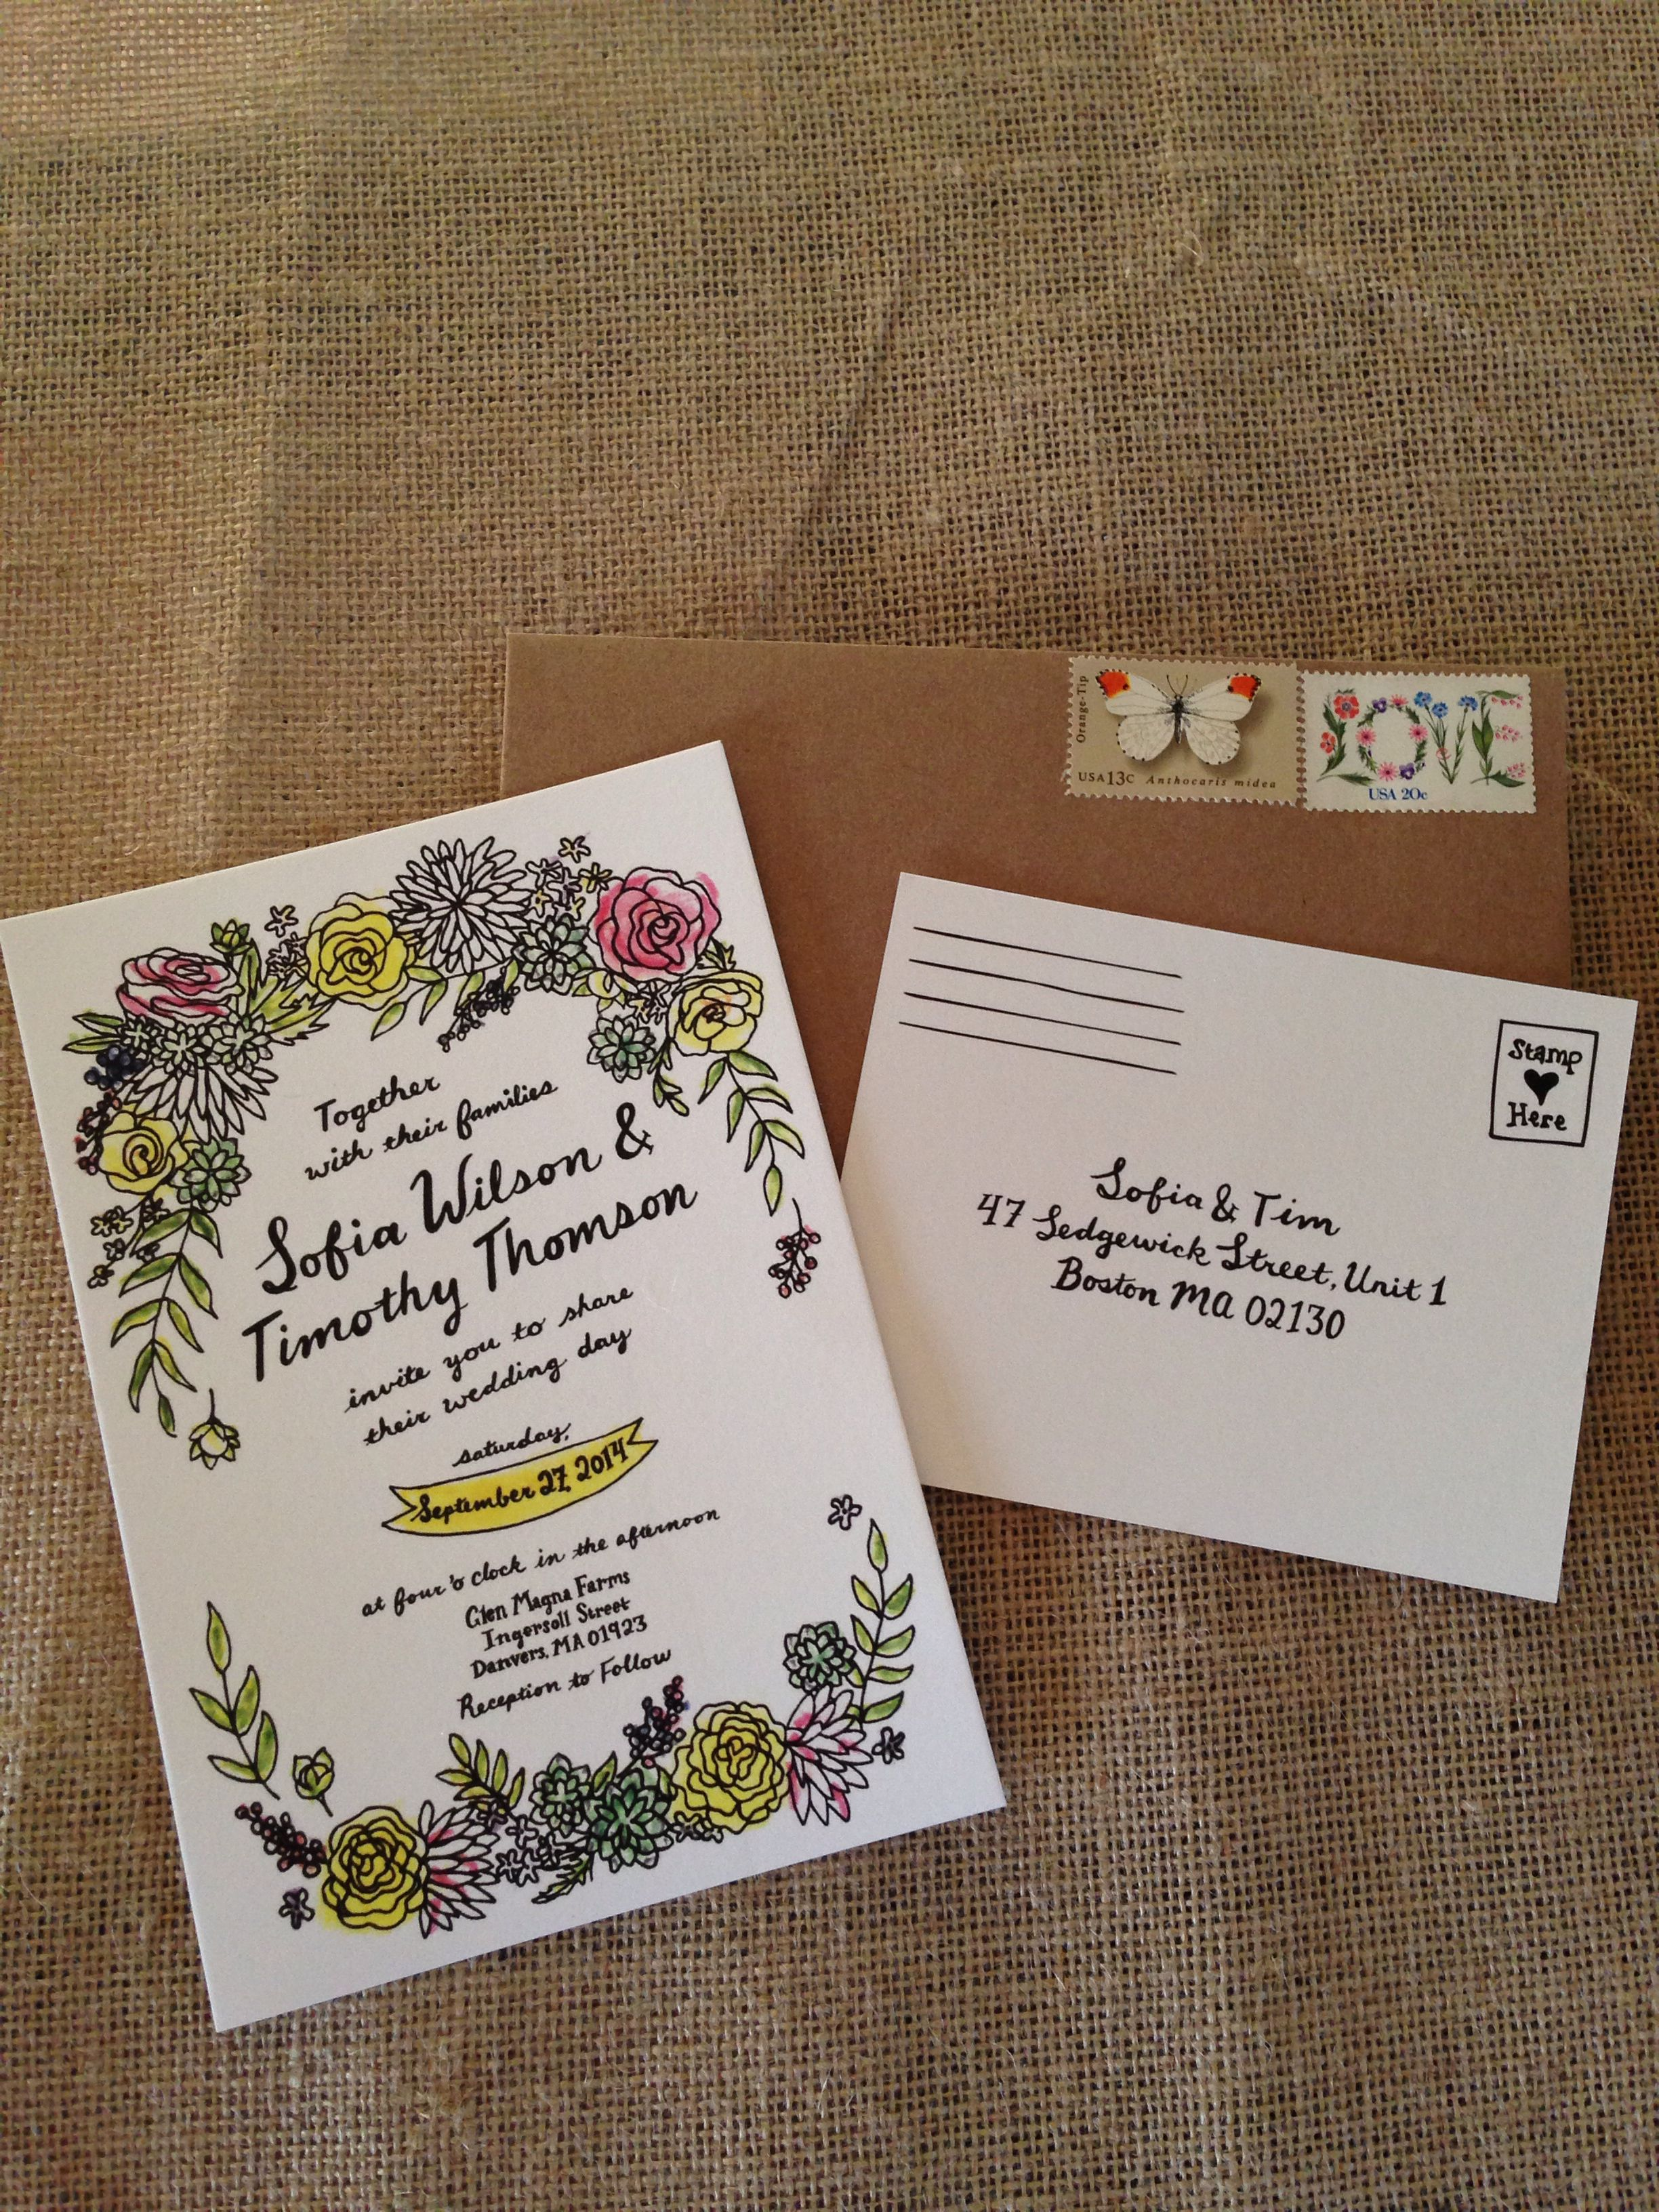 Invitations of Wedding  Same style and font for guest book and entrance welcome sign .